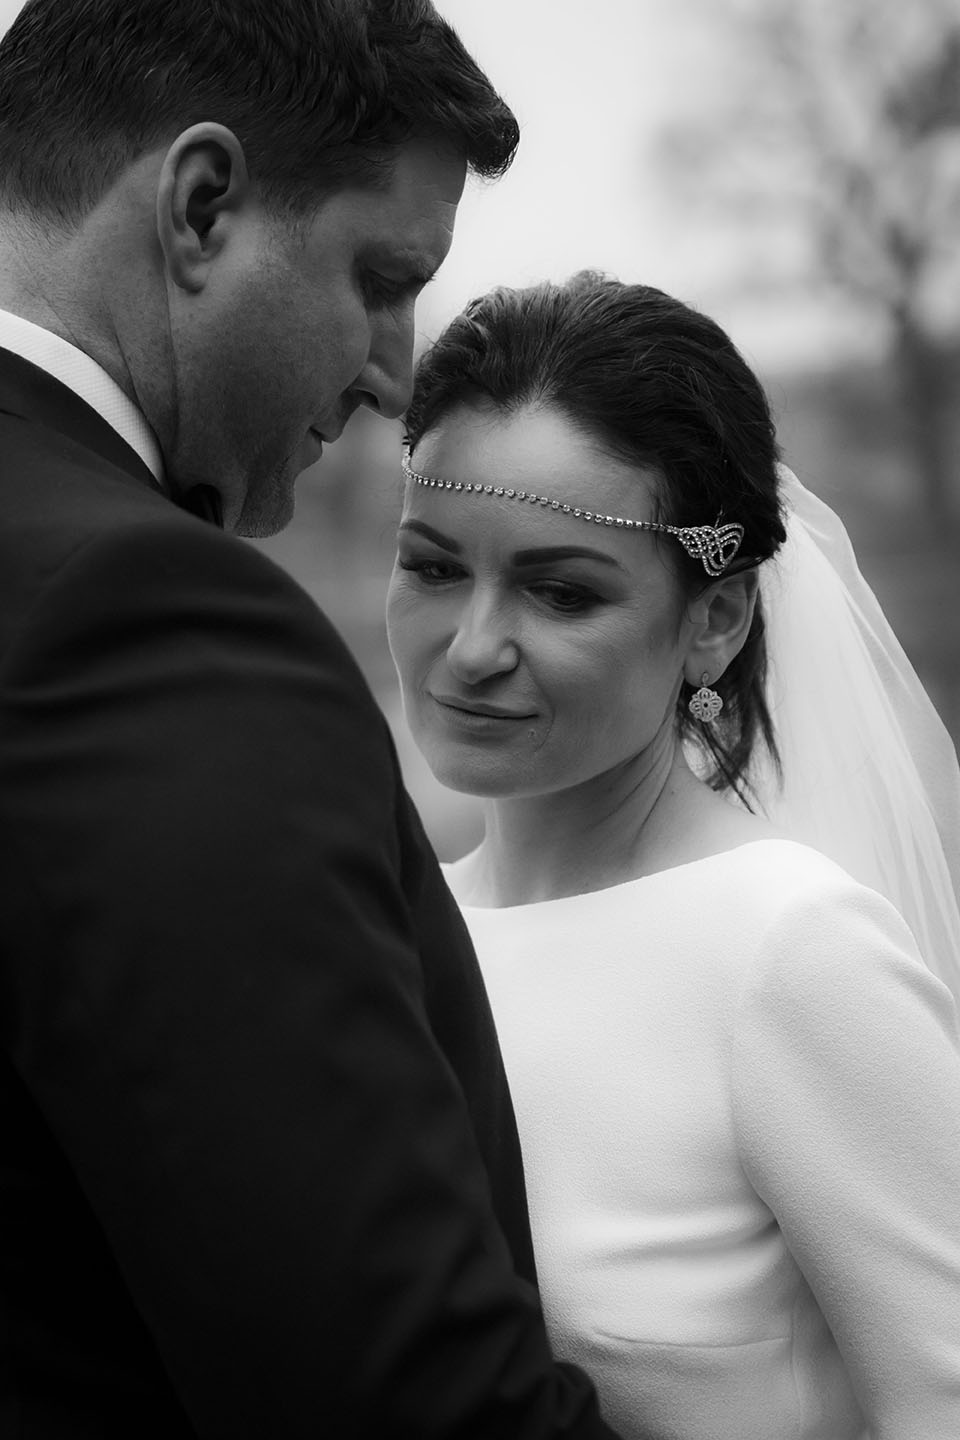 irish wedding photographer Carton House Kildare IJ2019 43 - Gallery